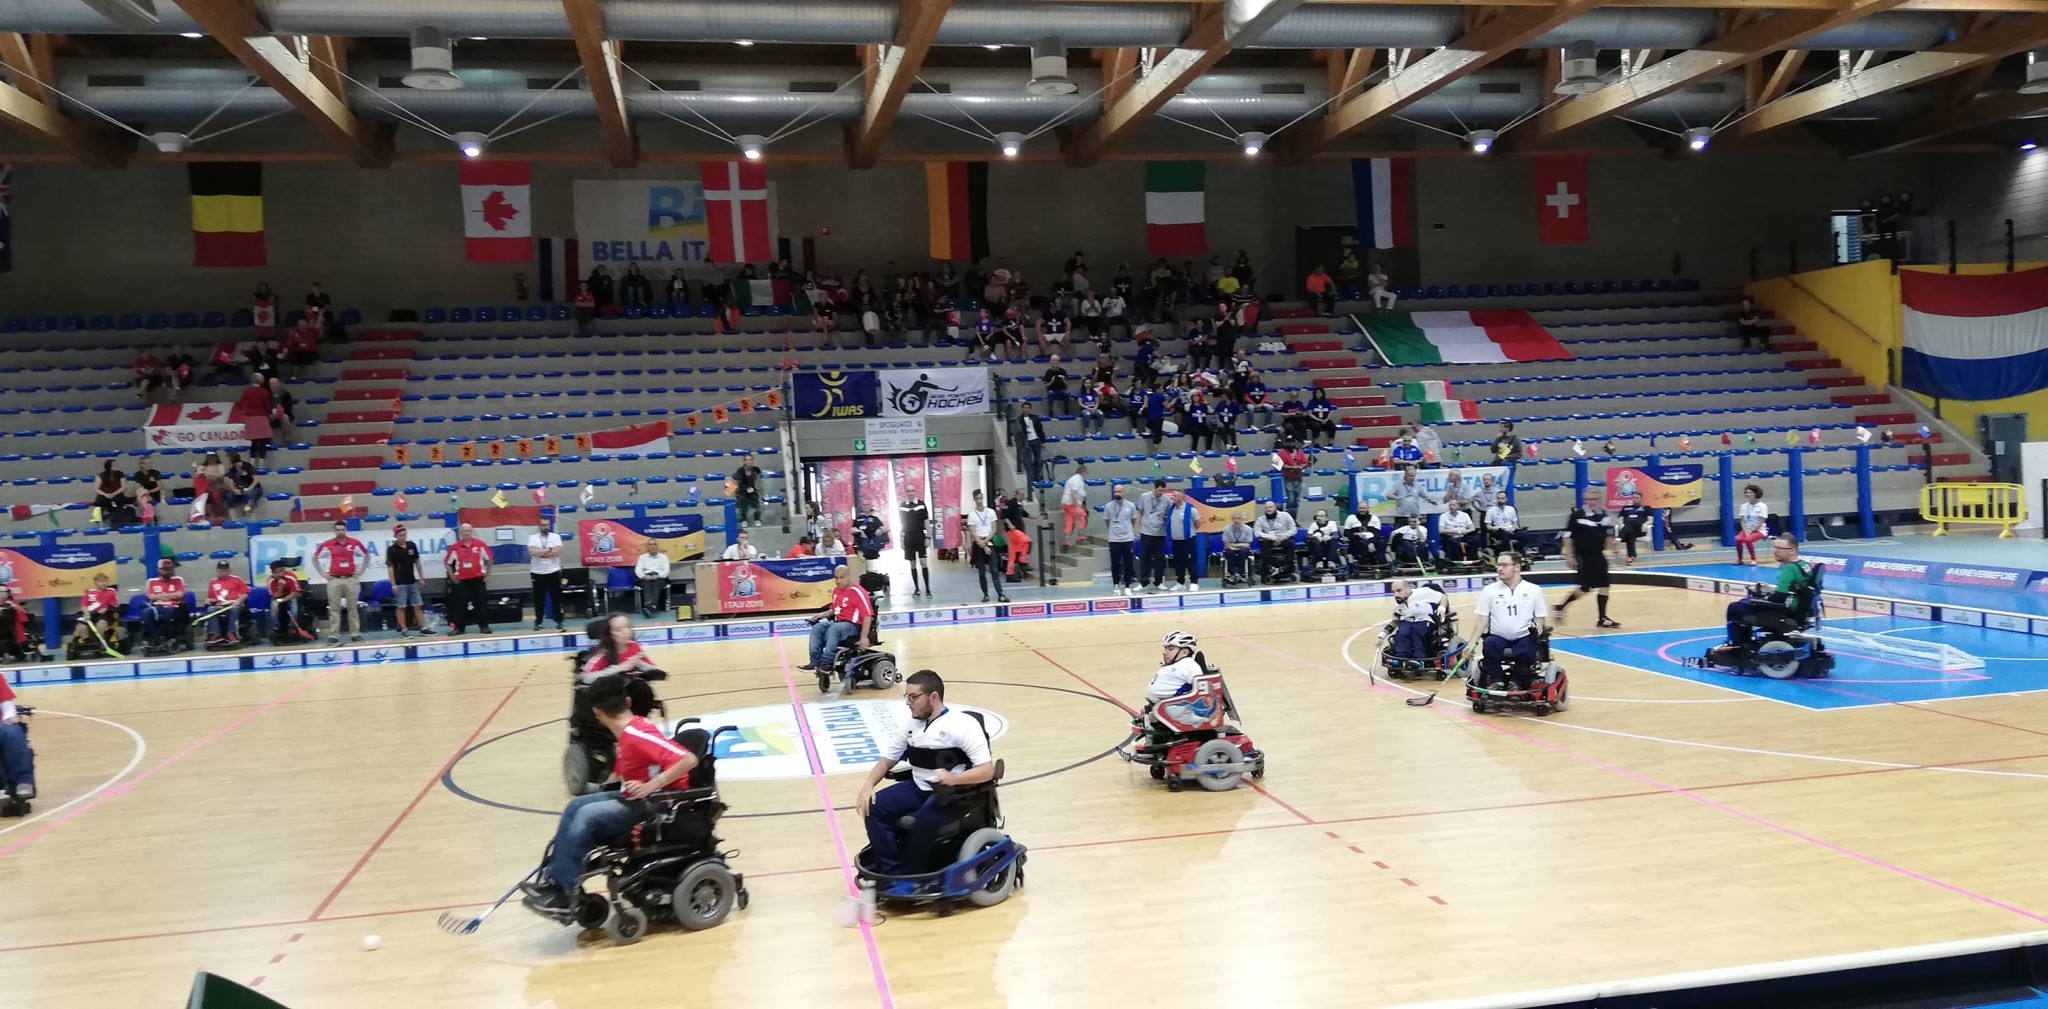 Hosts Italy recorded their second consecutive victory today ©IWAS